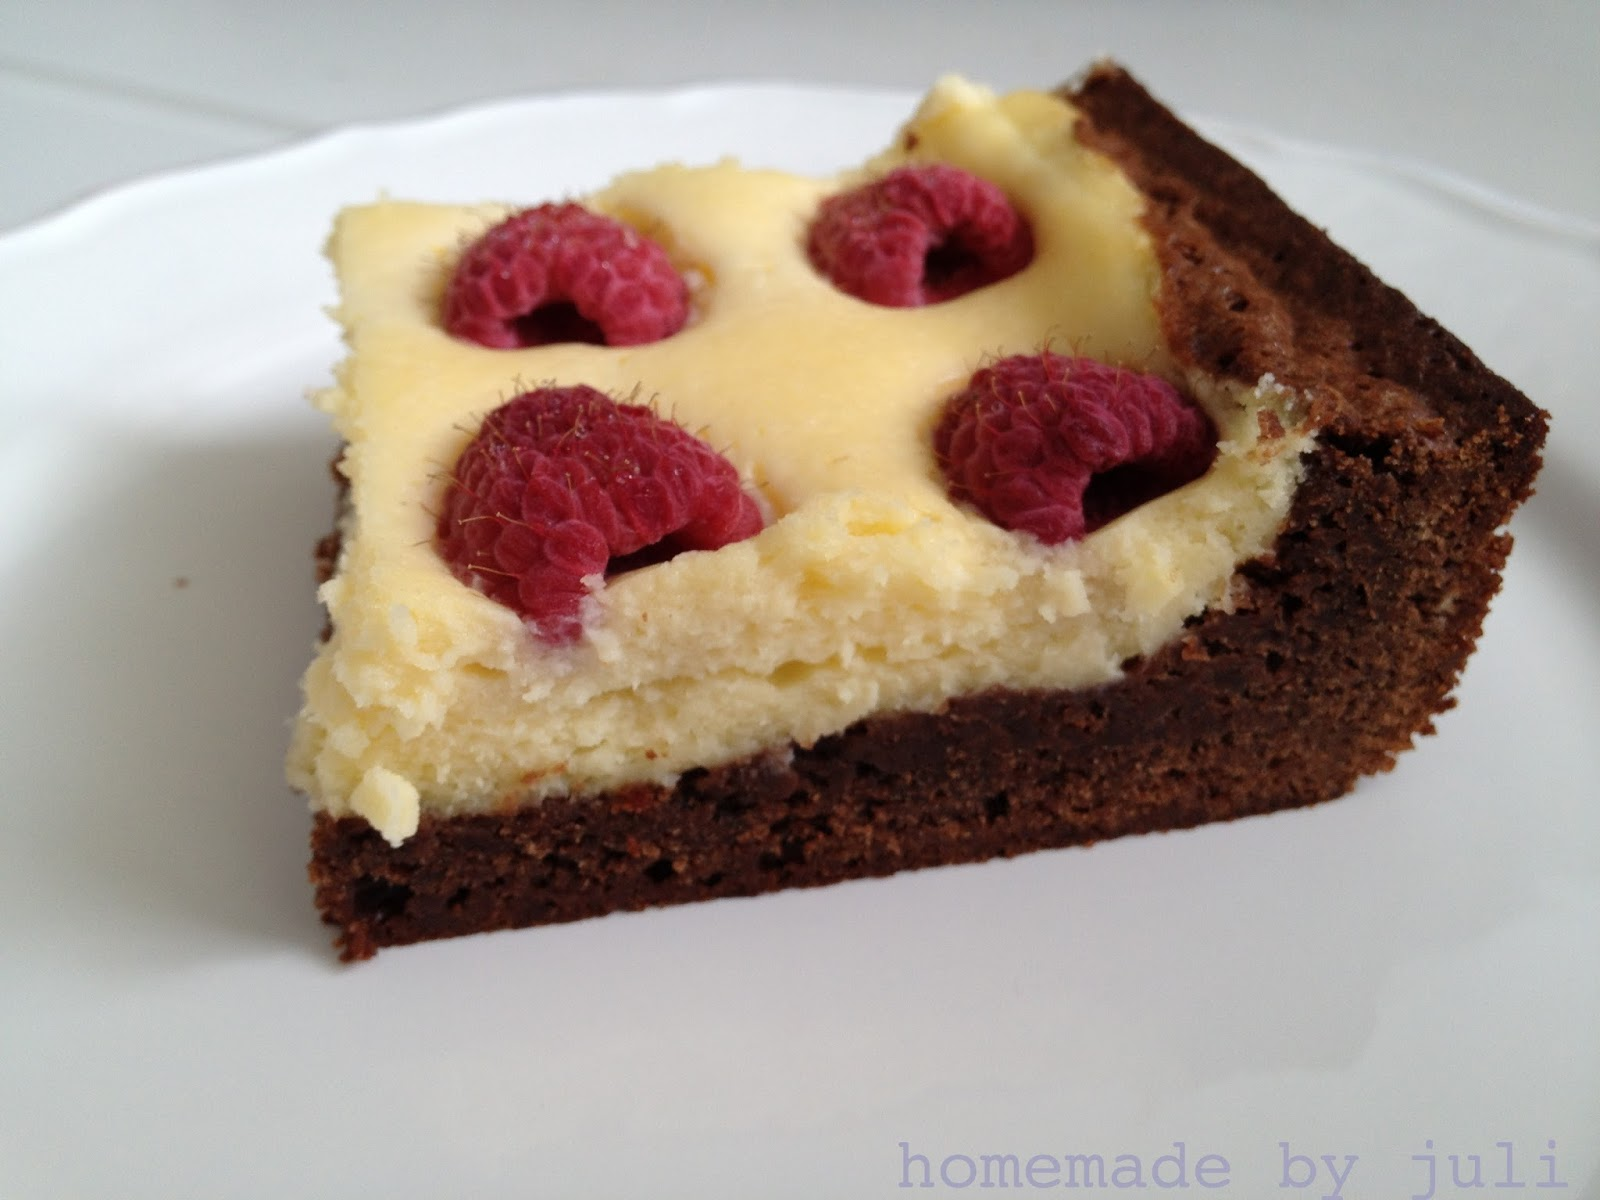 homemade by juli cheesecake brownies mit himbeeren. Black Bedroom Furniture Sets. Home Design Ideas